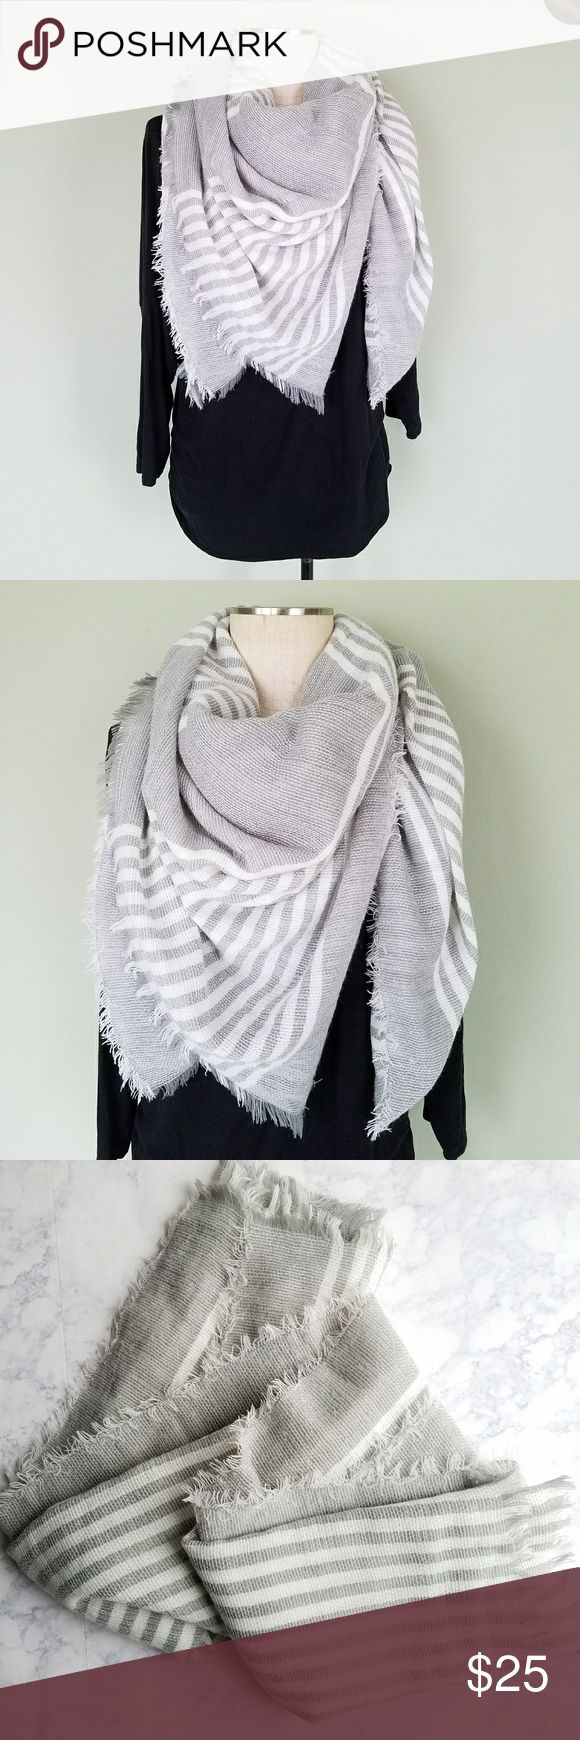 """Oversized Striped Tartan Blanket Scarf Plaid Oversized & super cozy!  Striped Blanket Scarf.  Gray white stripe. Fringe edges.  Square - 55"""" x 55""""  Excellent condition!  So many ways to wear it! Accessories Scarves & Wraps"""